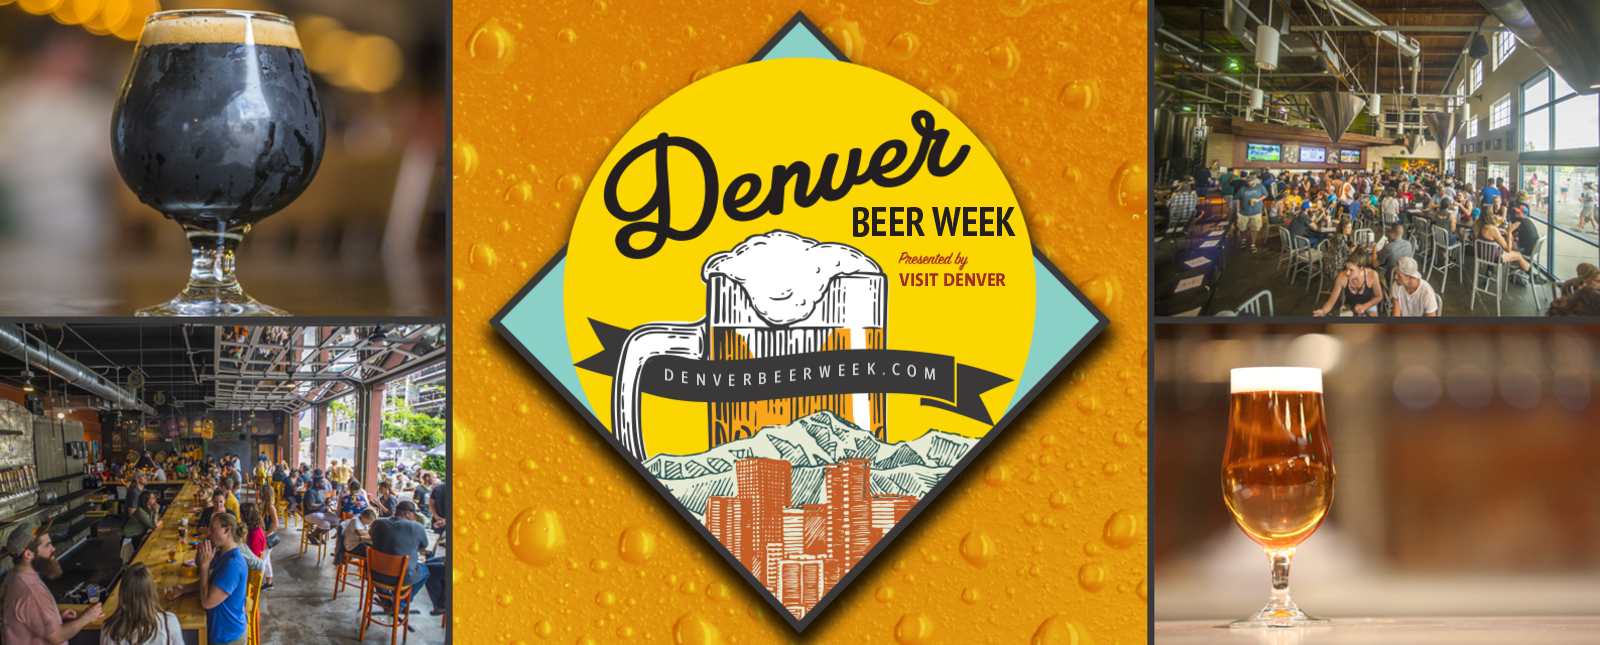 Denver Beer Week